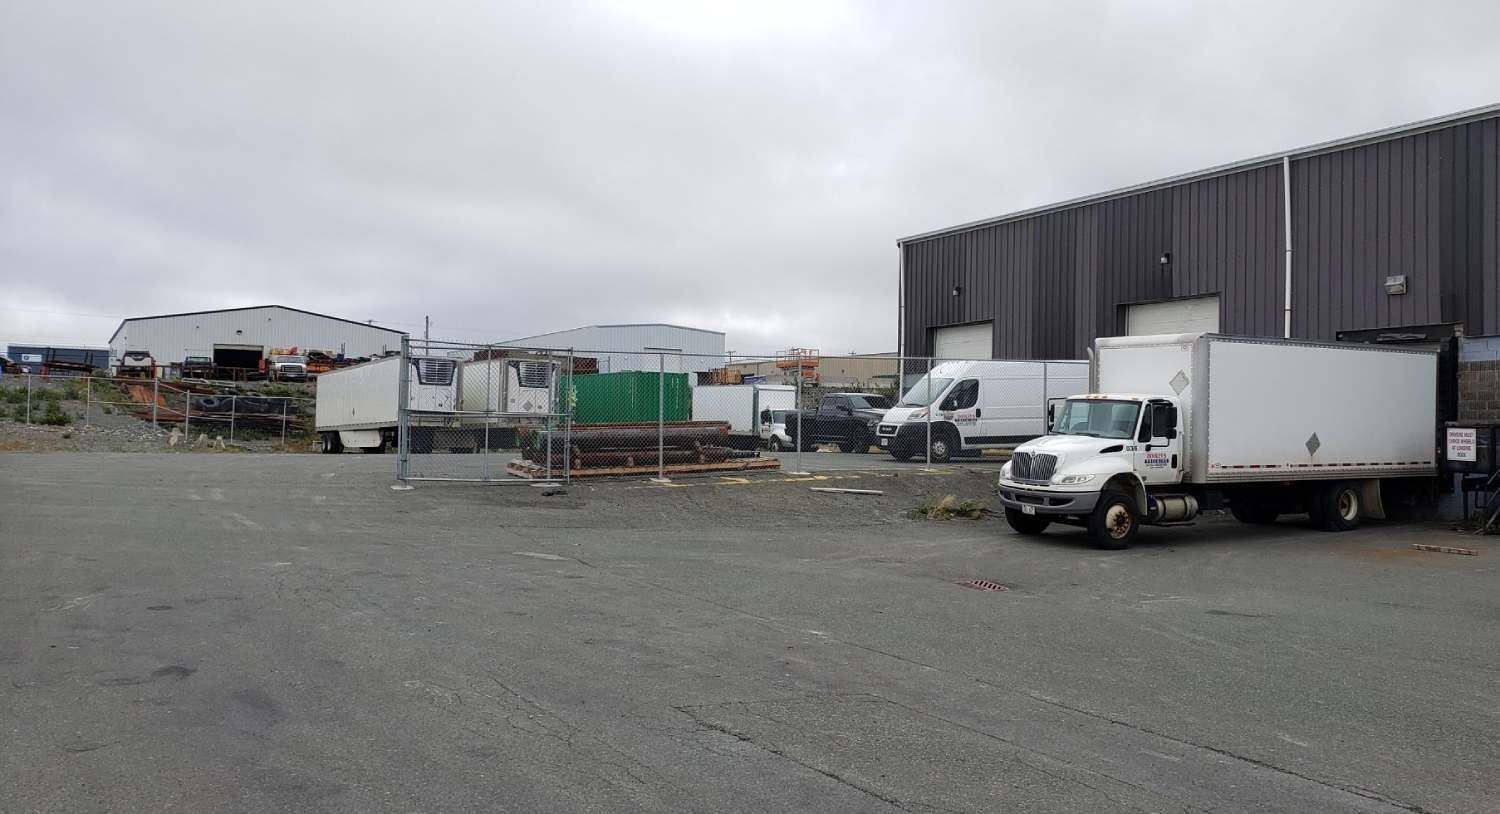 fleet of trucks parked outside the facility